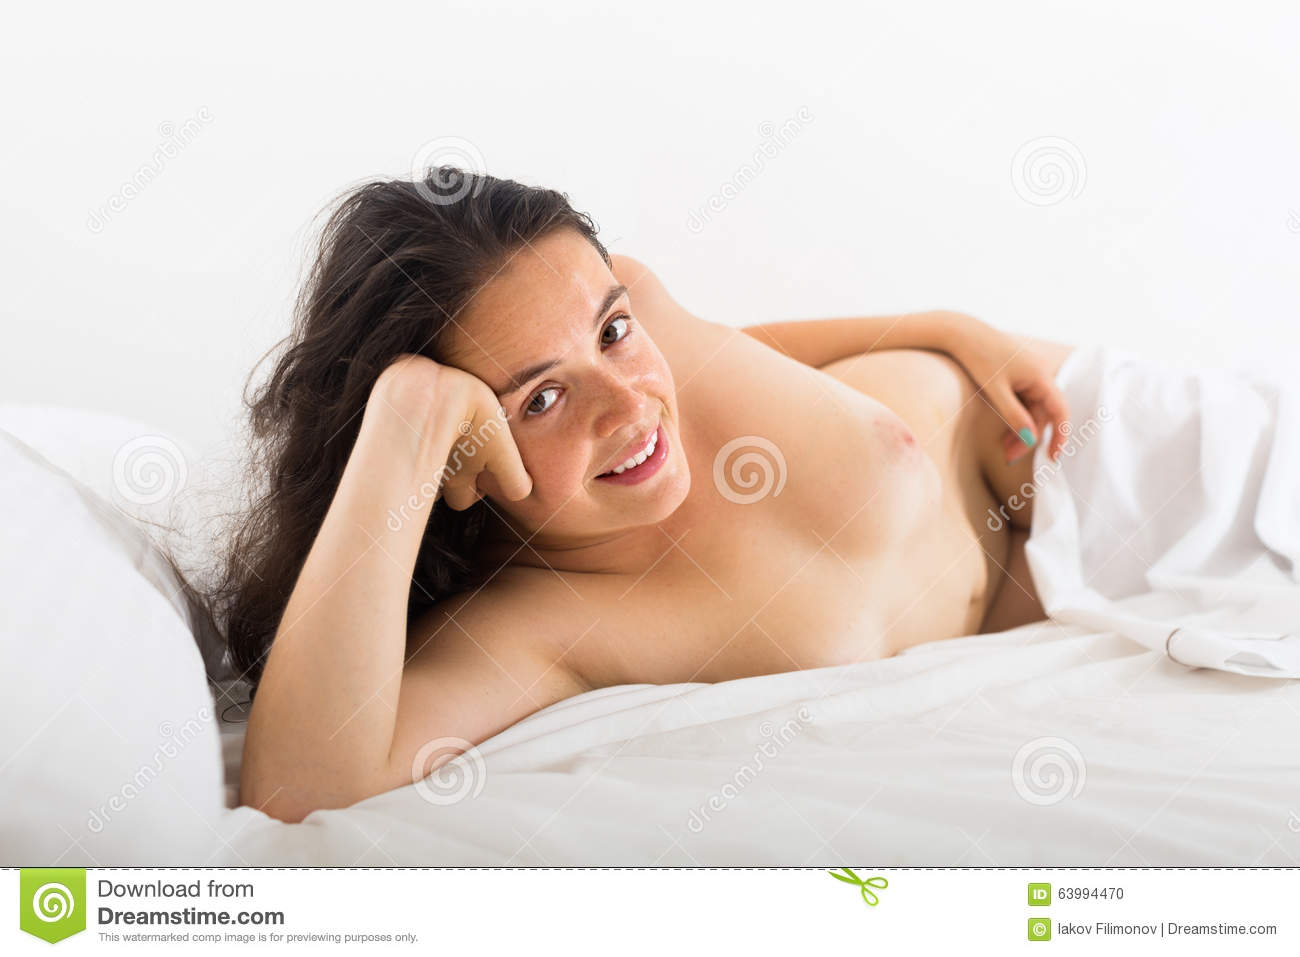 girls naked in bed fuckin